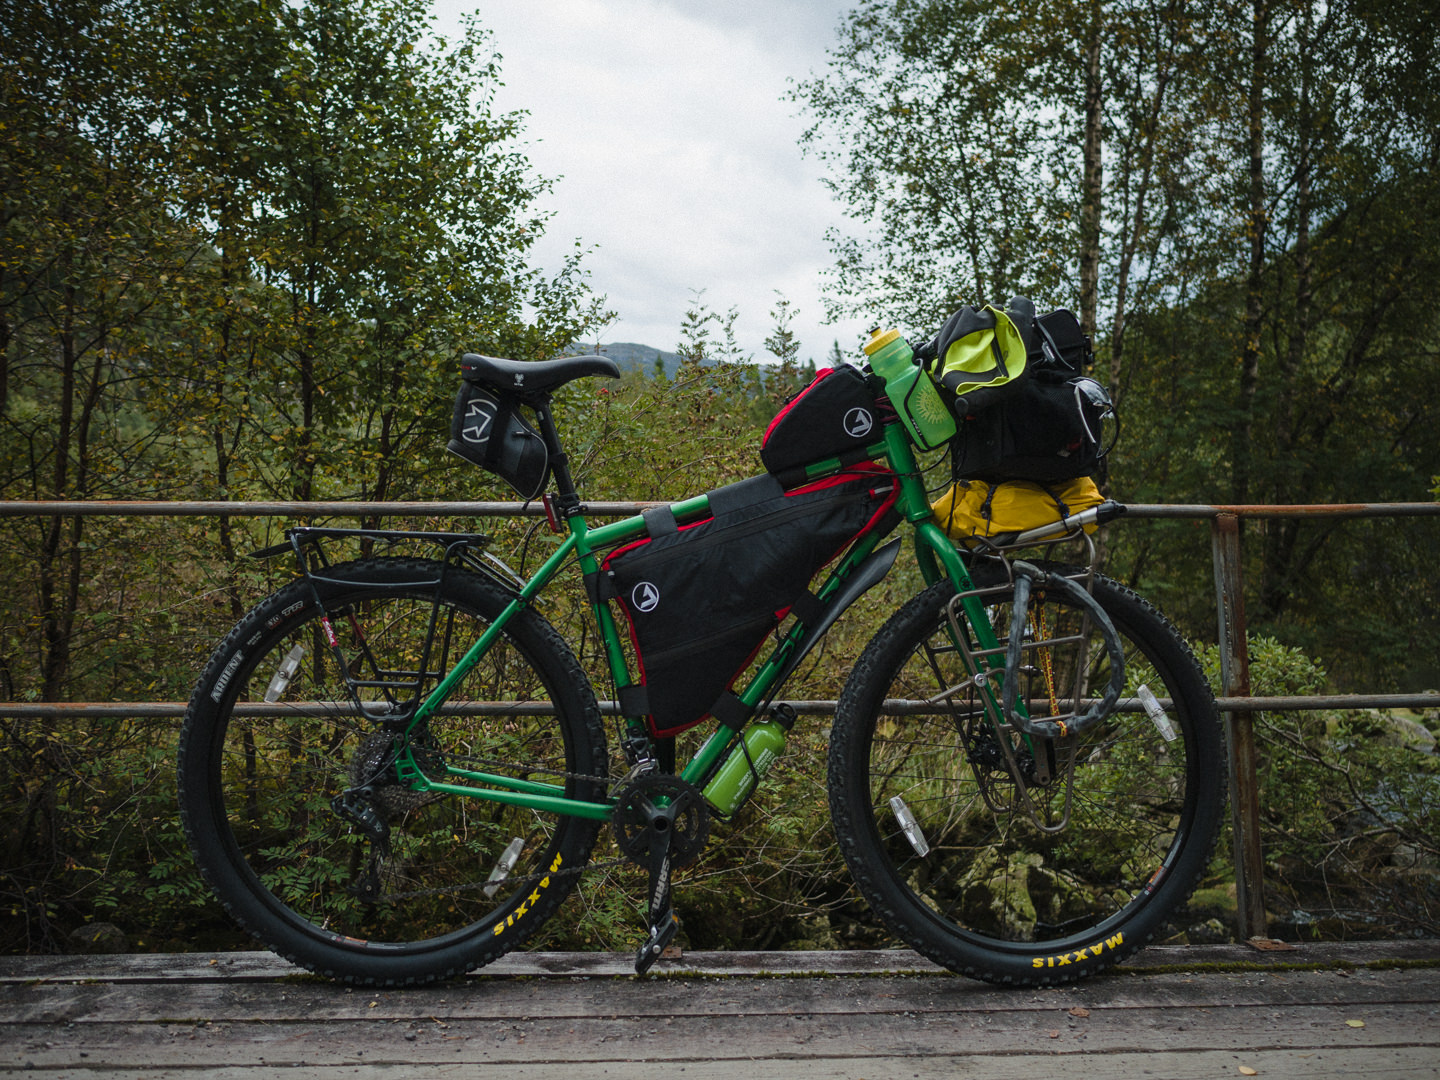 touring bicycle with racks, a few bags but no panniers